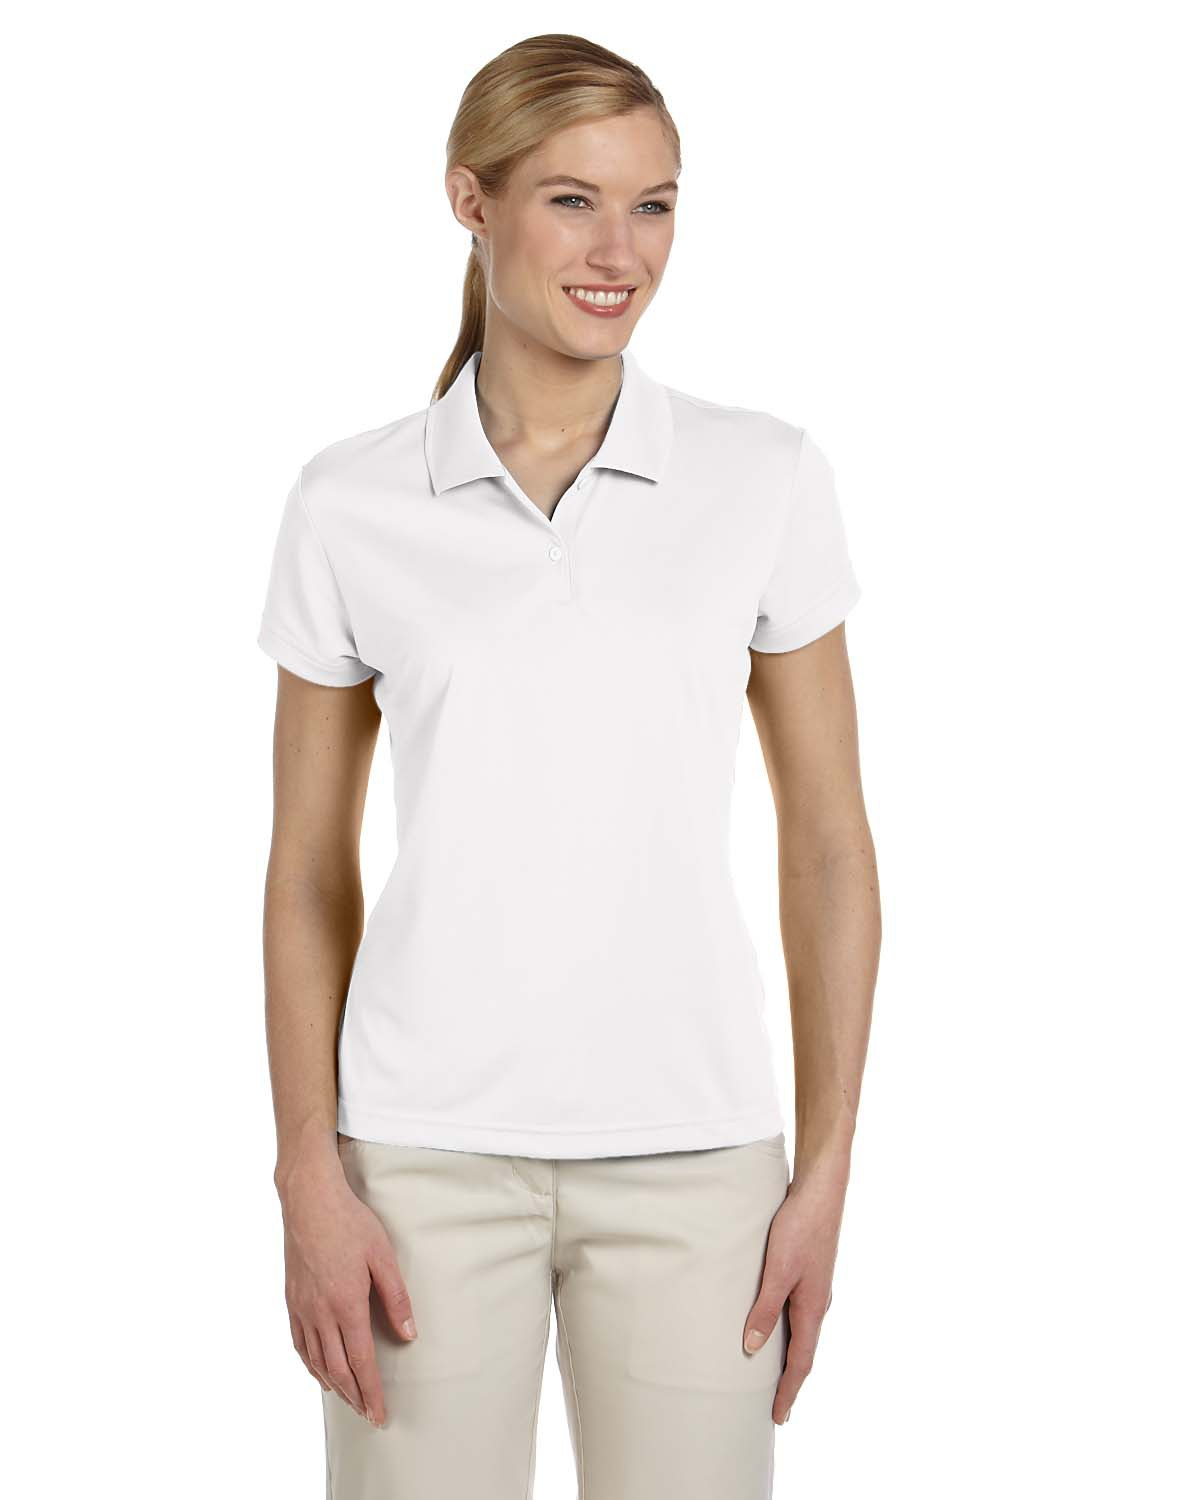 Adidas Golf Womens Climalite Pique Polo A122